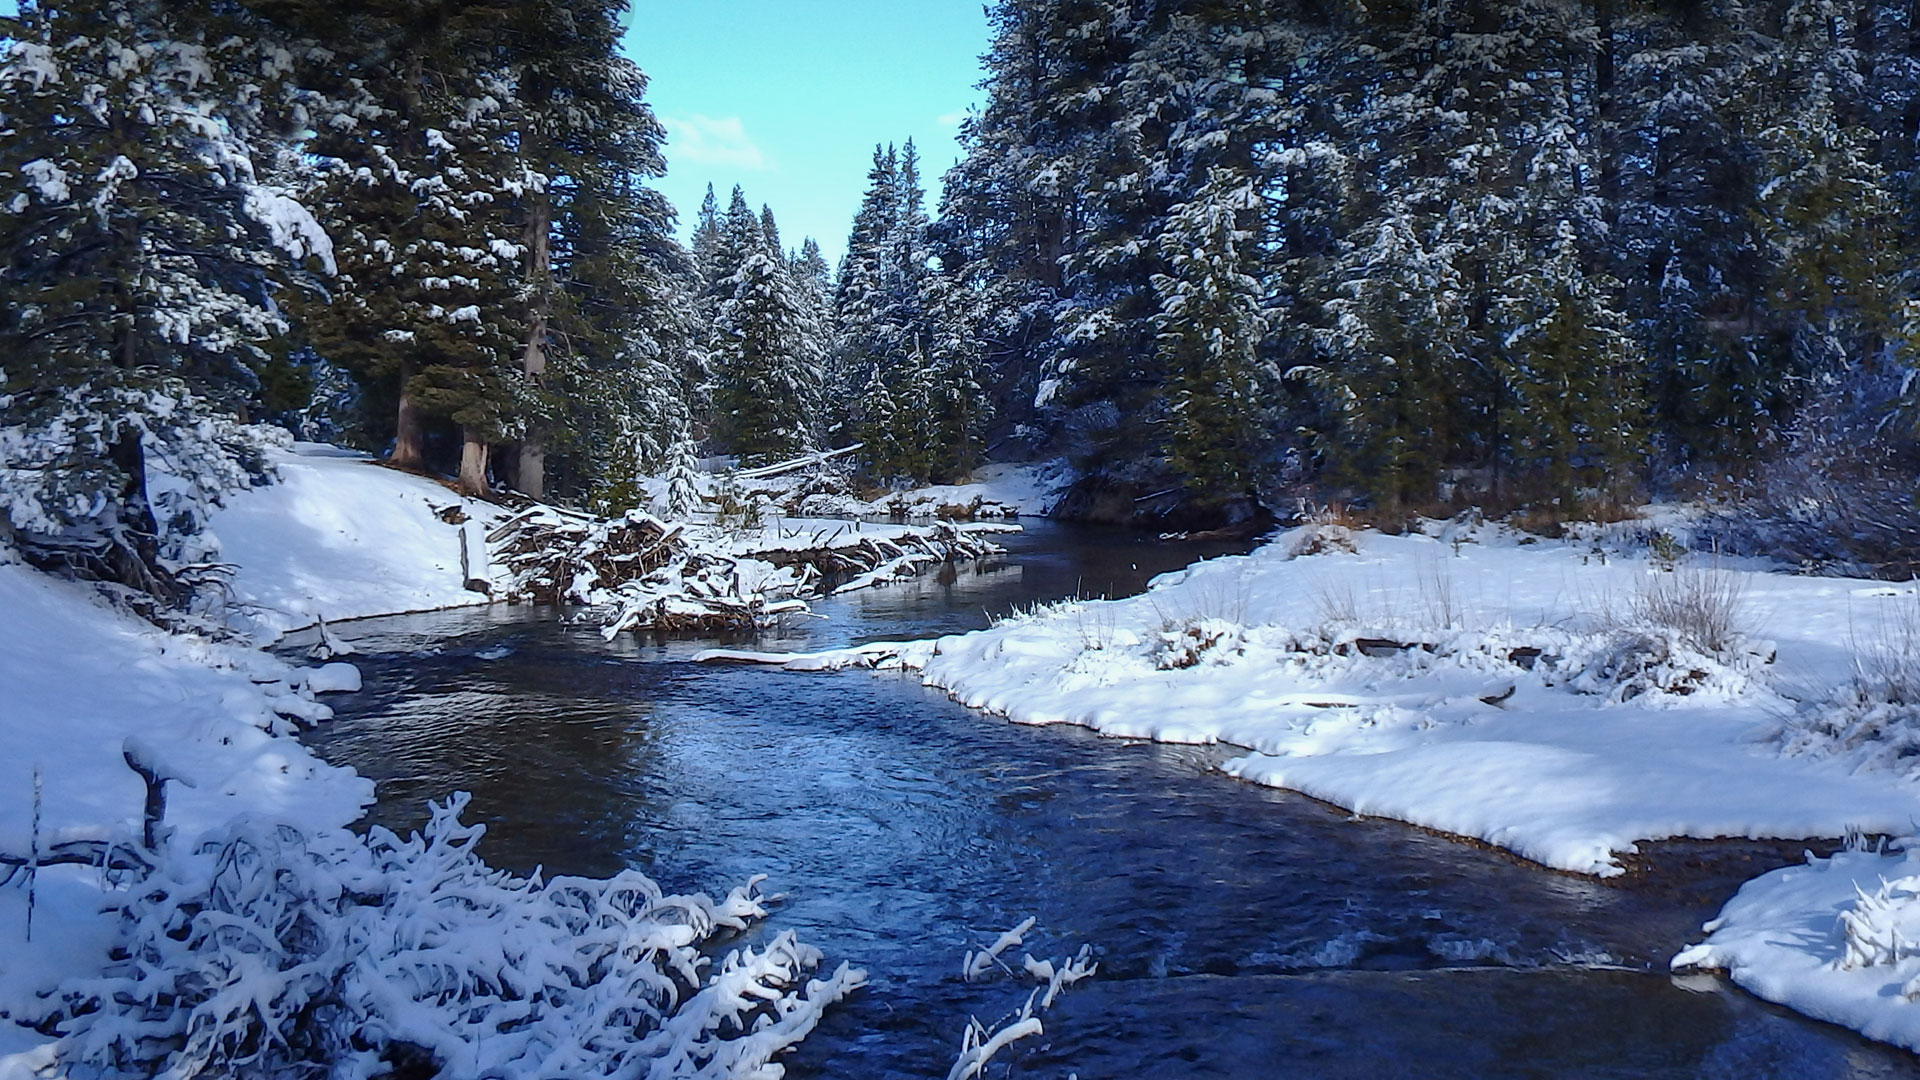 Truckee River in the winter surrounded by snow